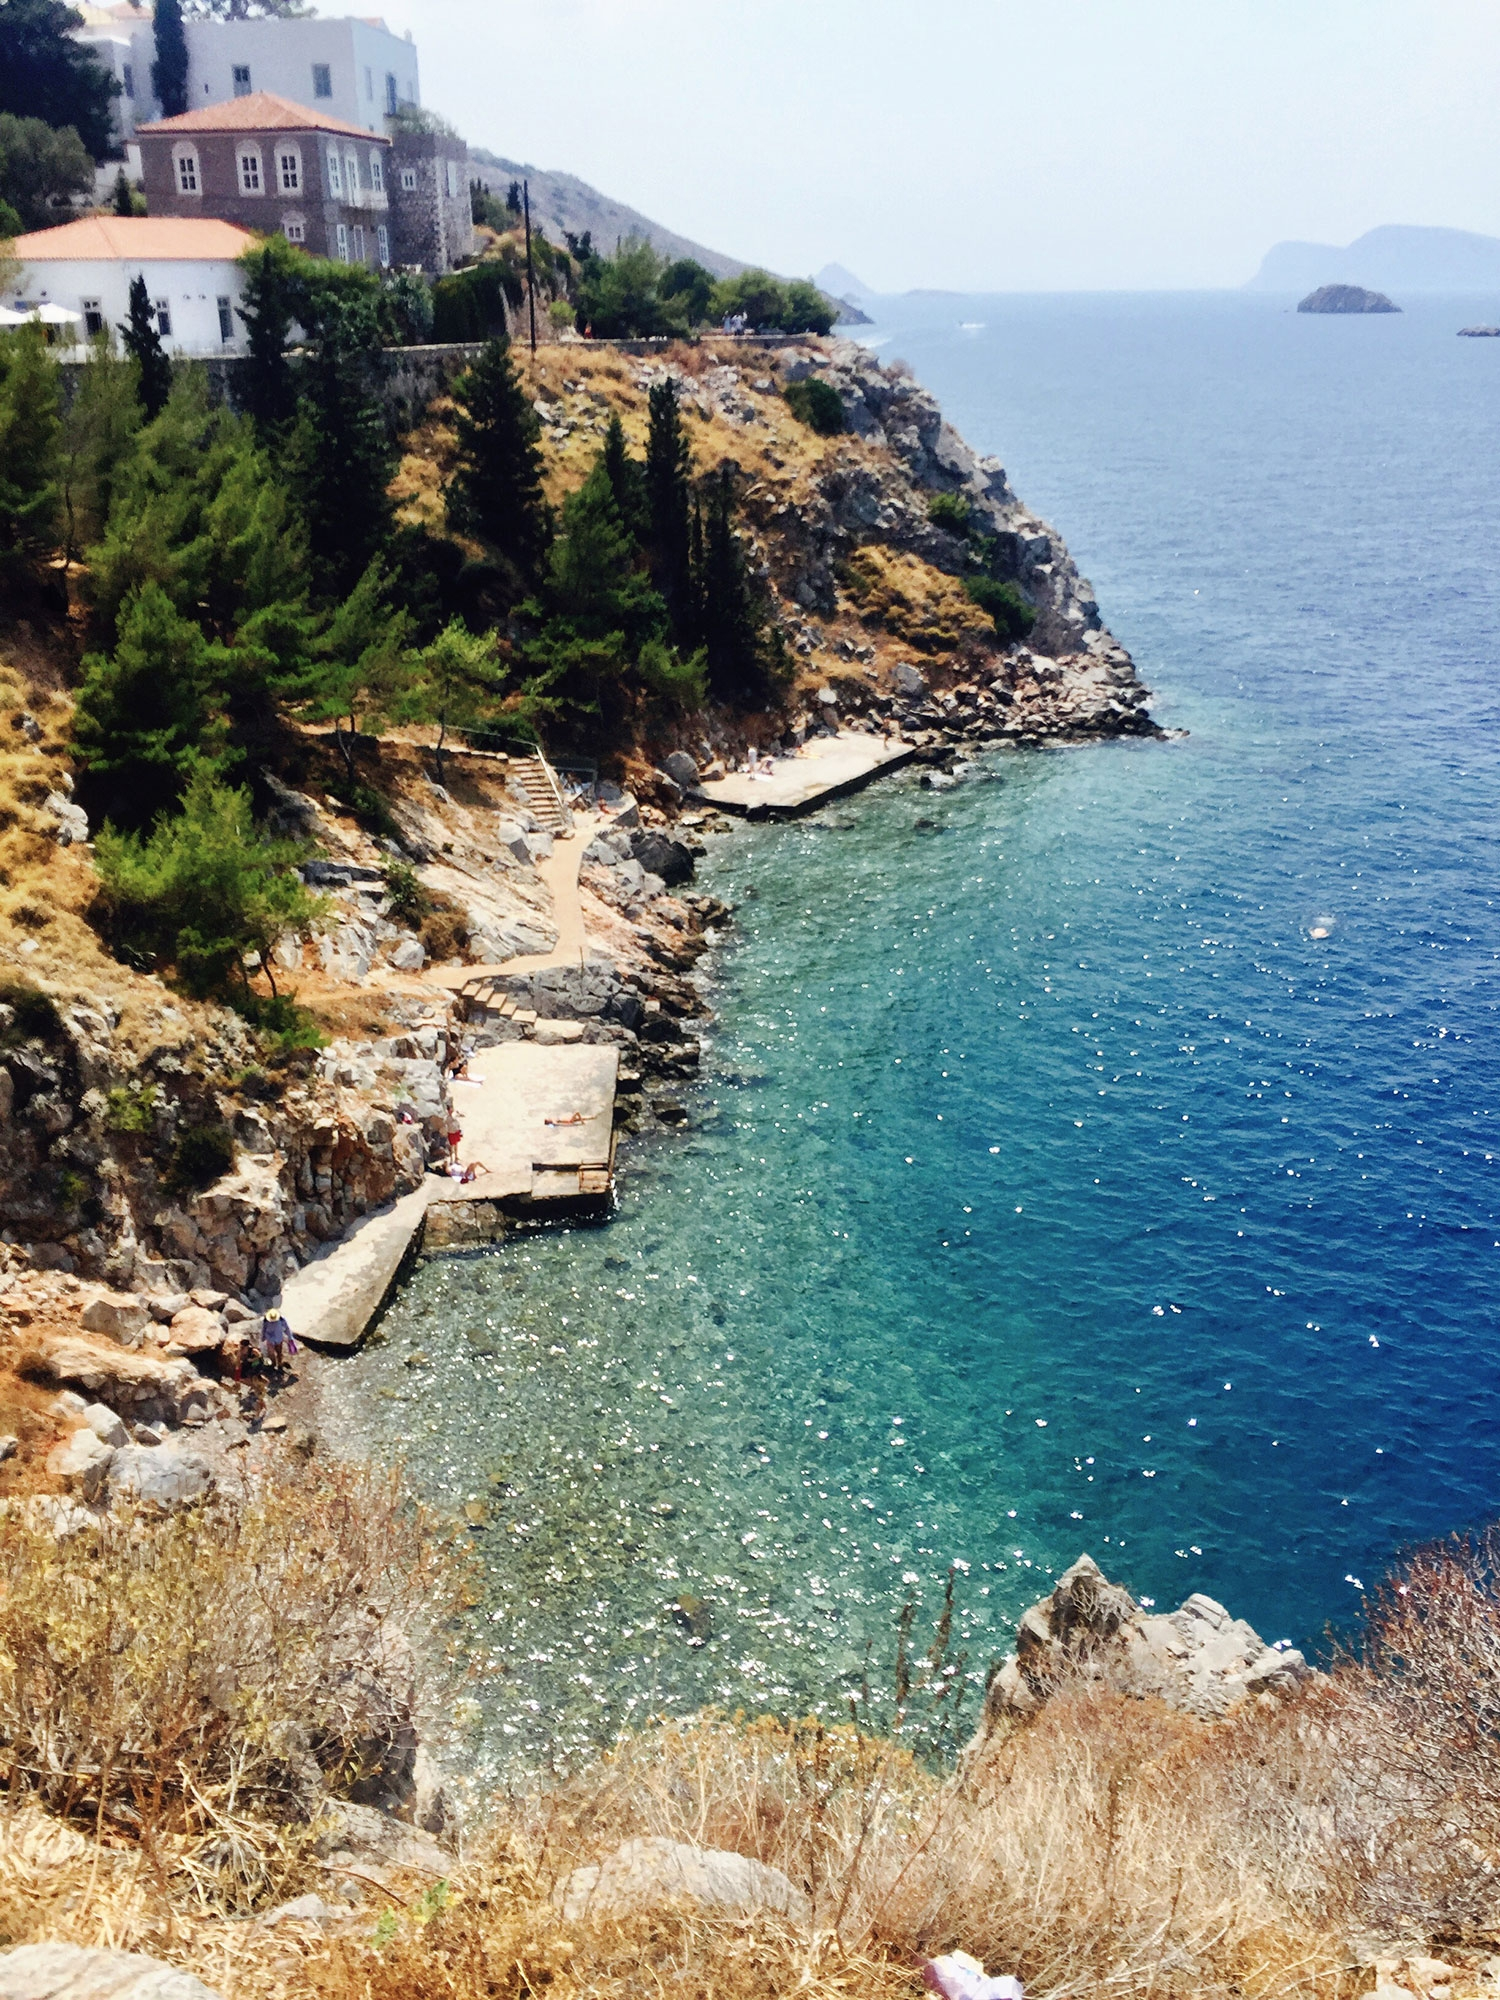 The different shades of ocean blue sparkling in a cove on the coast of Hydra